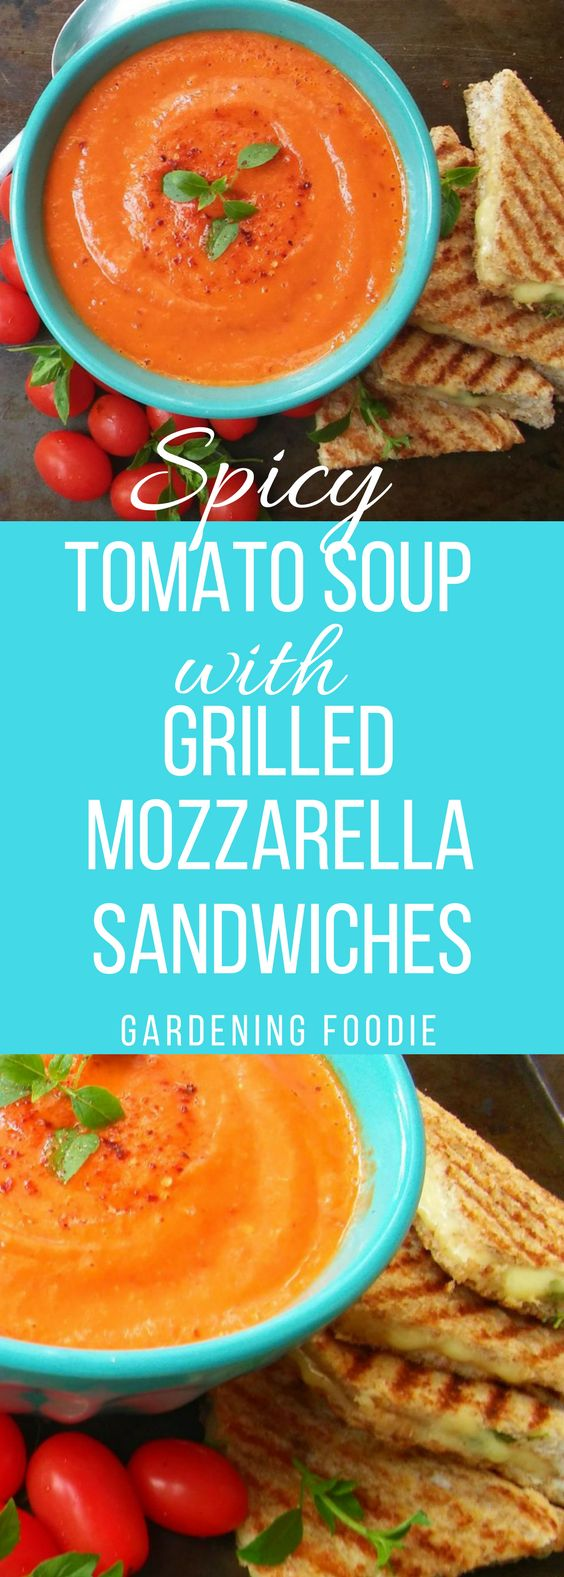 Spiced Tomato Soup with Grilled smoked Mozzarella and Basil Sandwiches ⋆ Gardening Foodie